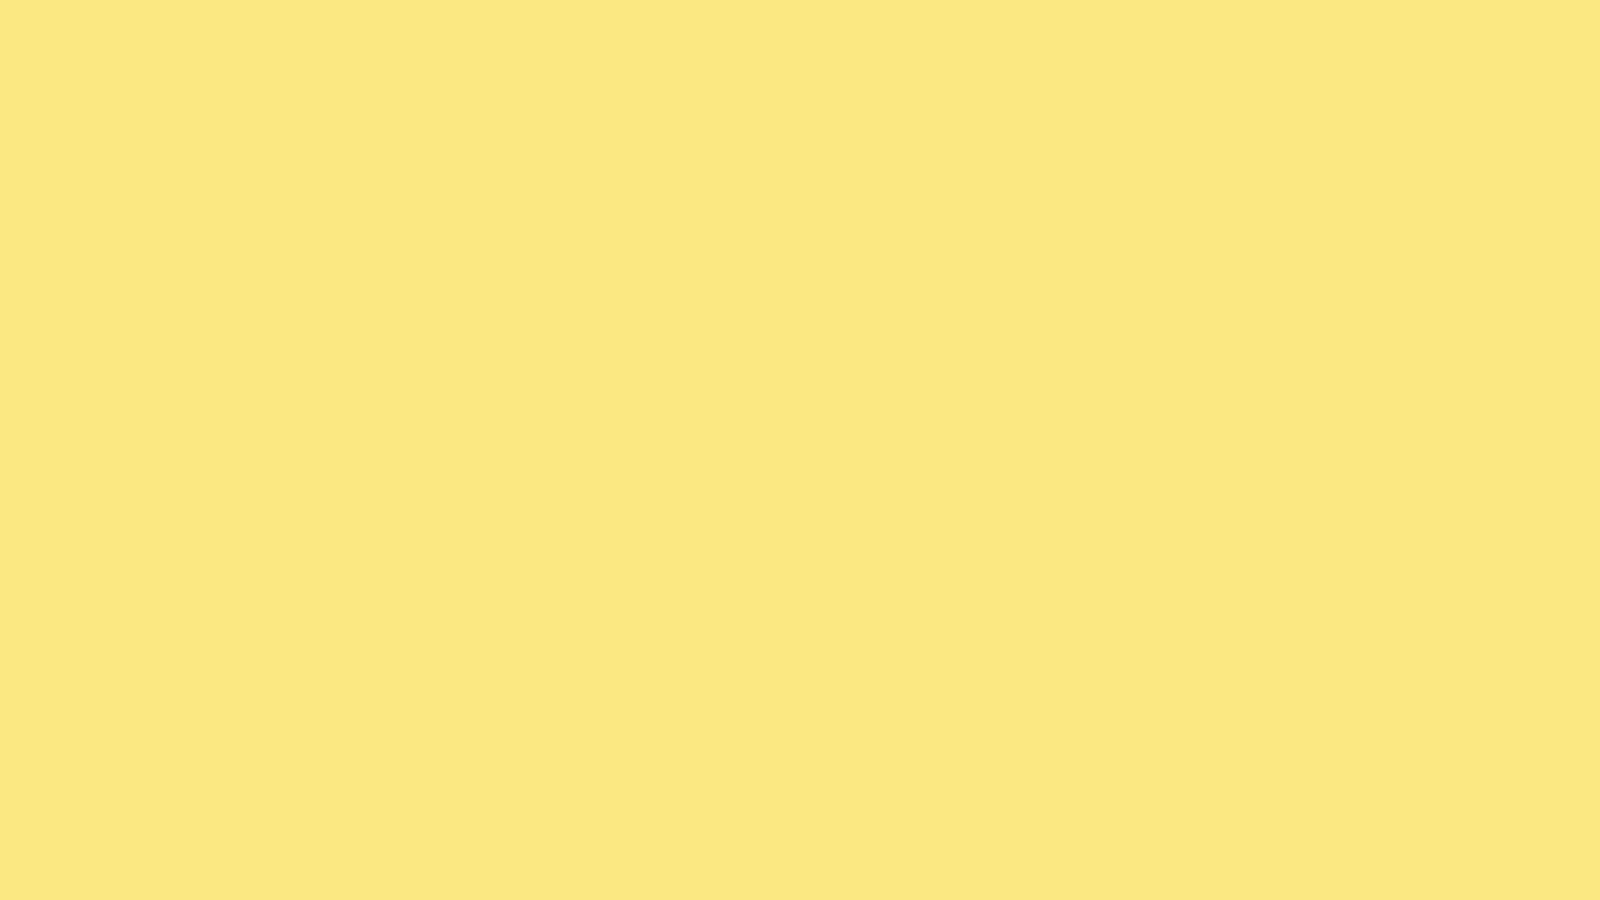 1600x900 Yellow Crayola Solid Color Background